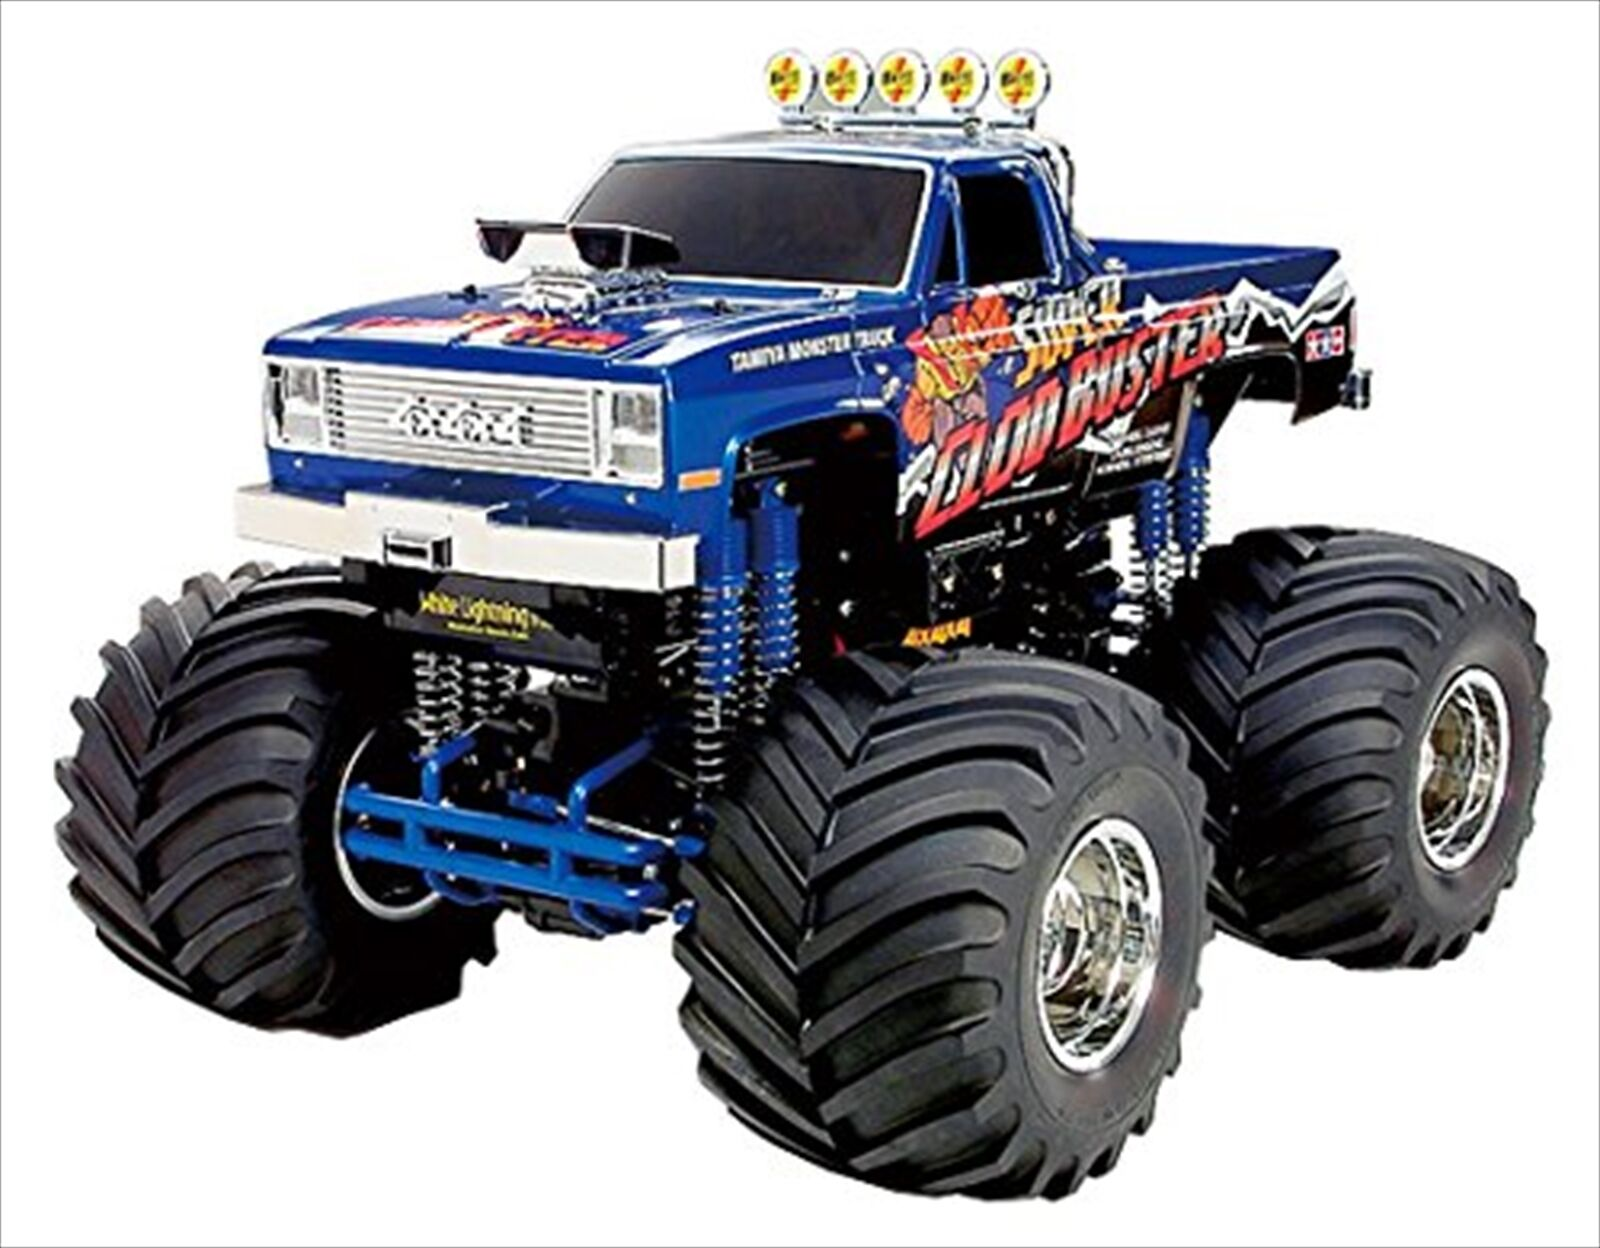 Tamiya 1 10 RC coche No.518 Super Clod Buster 4X4X4 Series 2012 Off-Road 58518